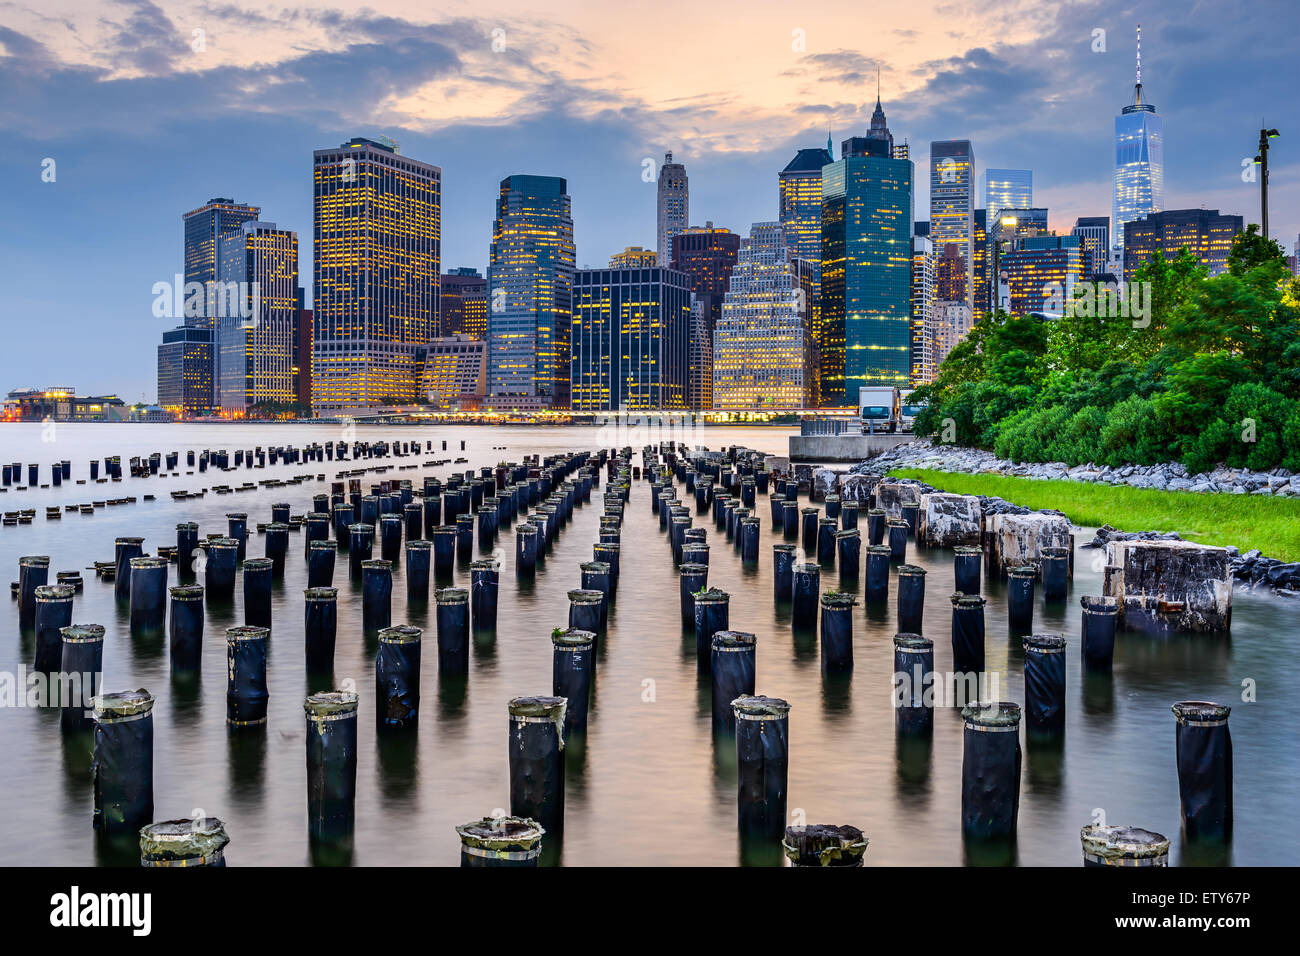 New York City, USA city skyline on the East River. - Stock Image